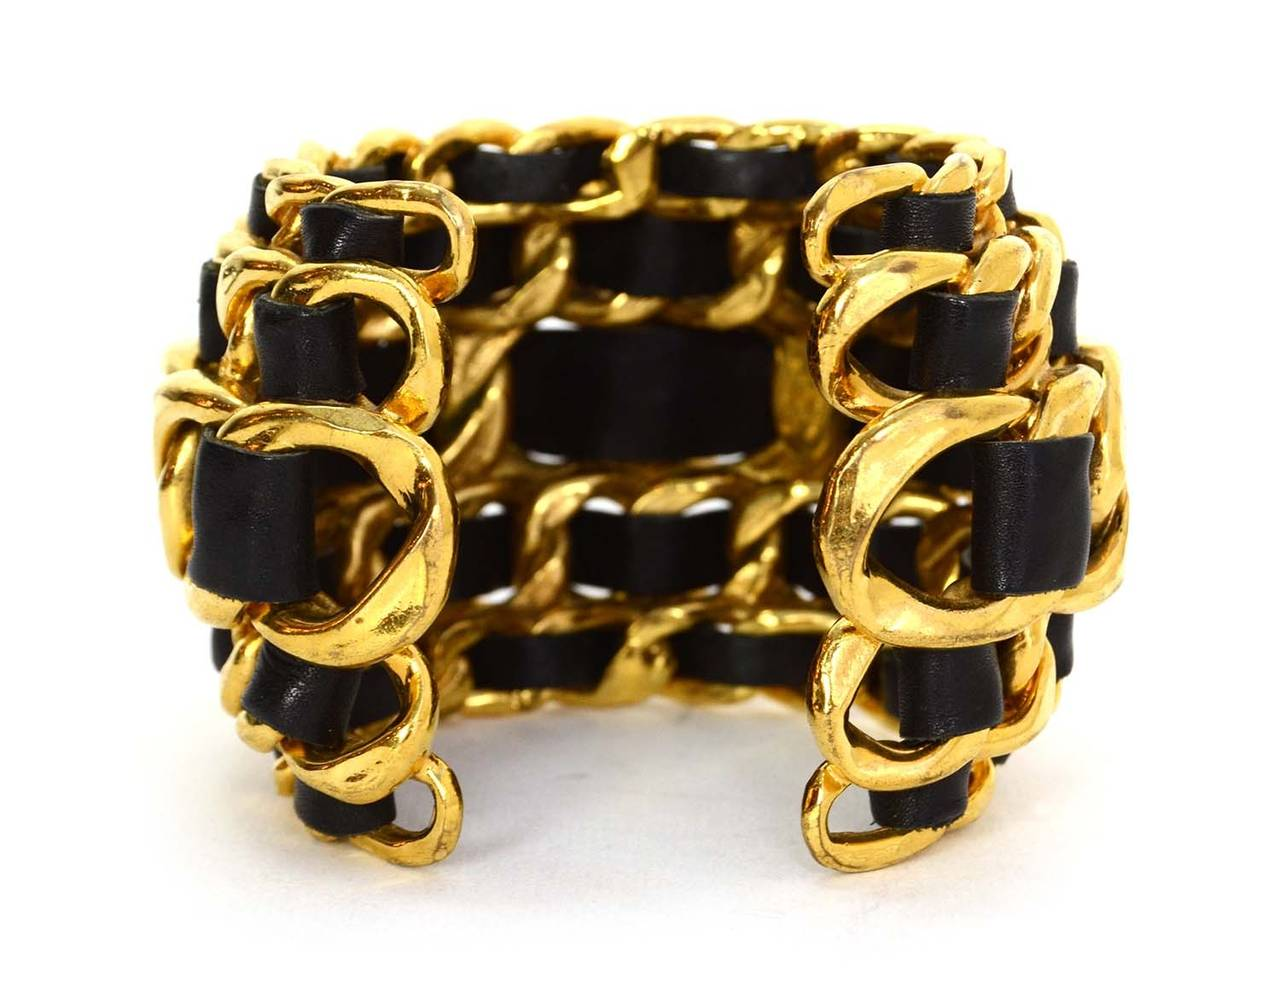 CHANEL Vintage '87 Black Leather Woven Gold Five-Tier Chain Link Cuff Bracelet 3